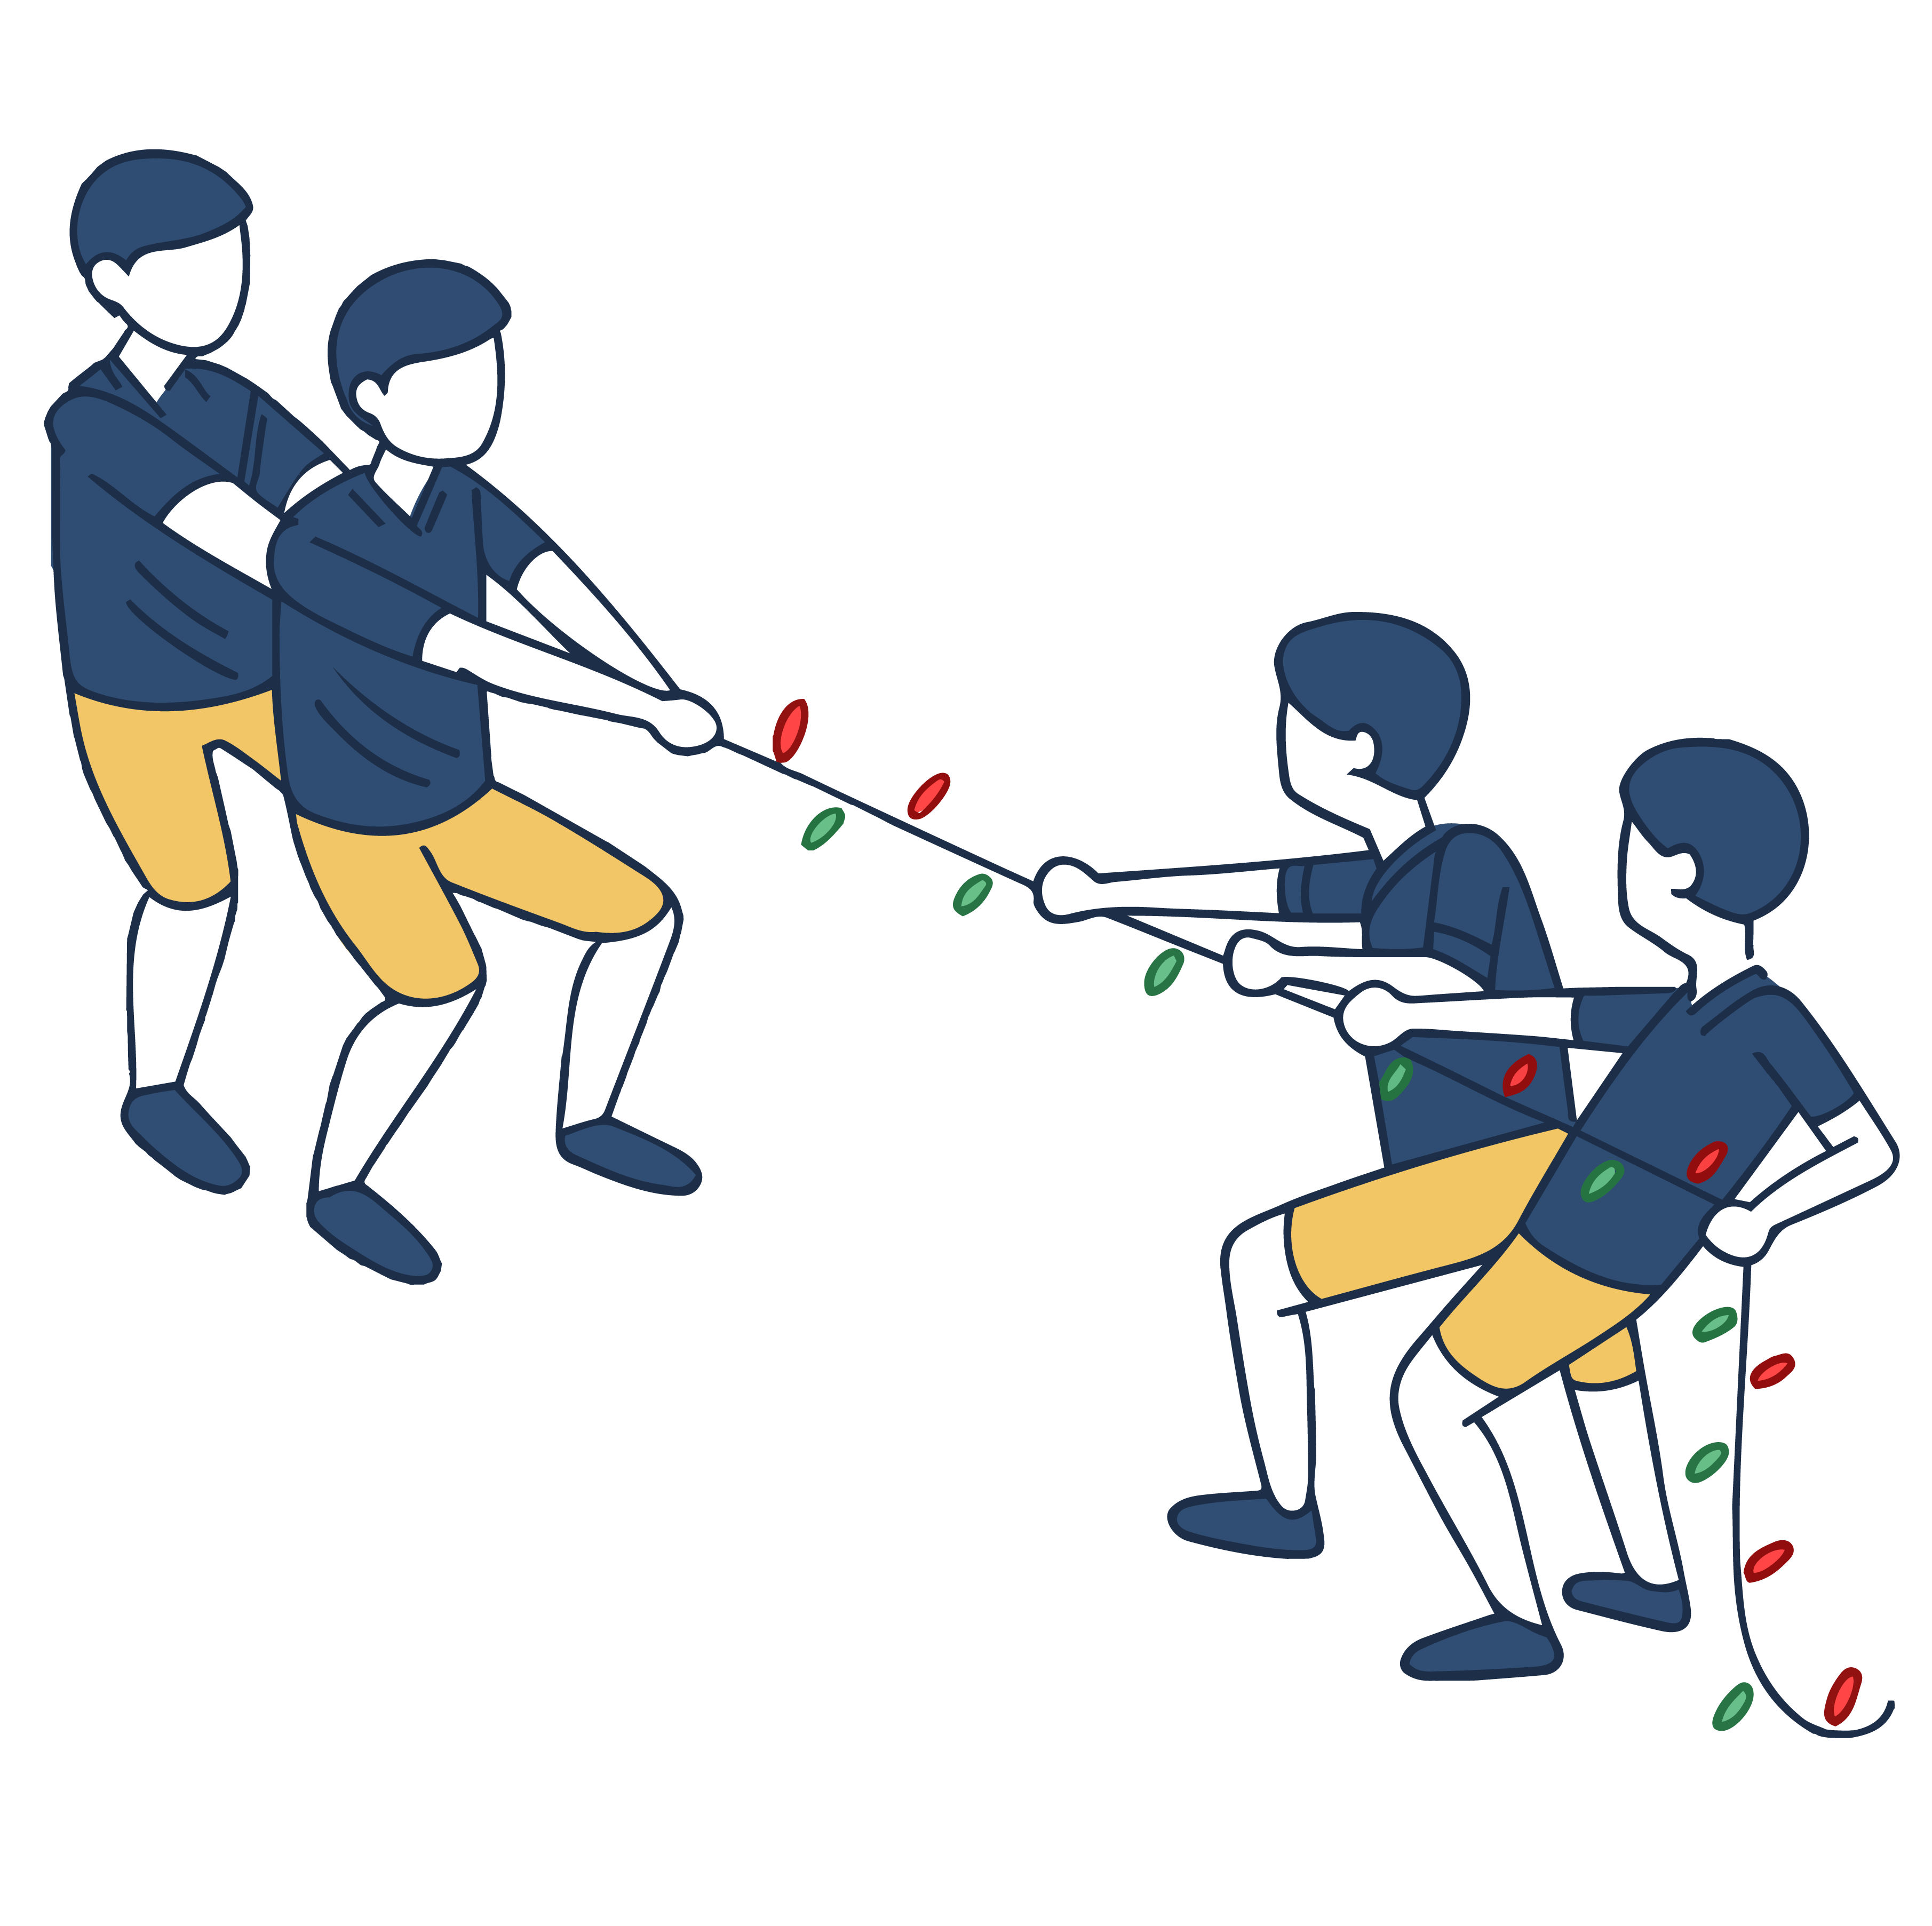 Christmas Light Tug of War